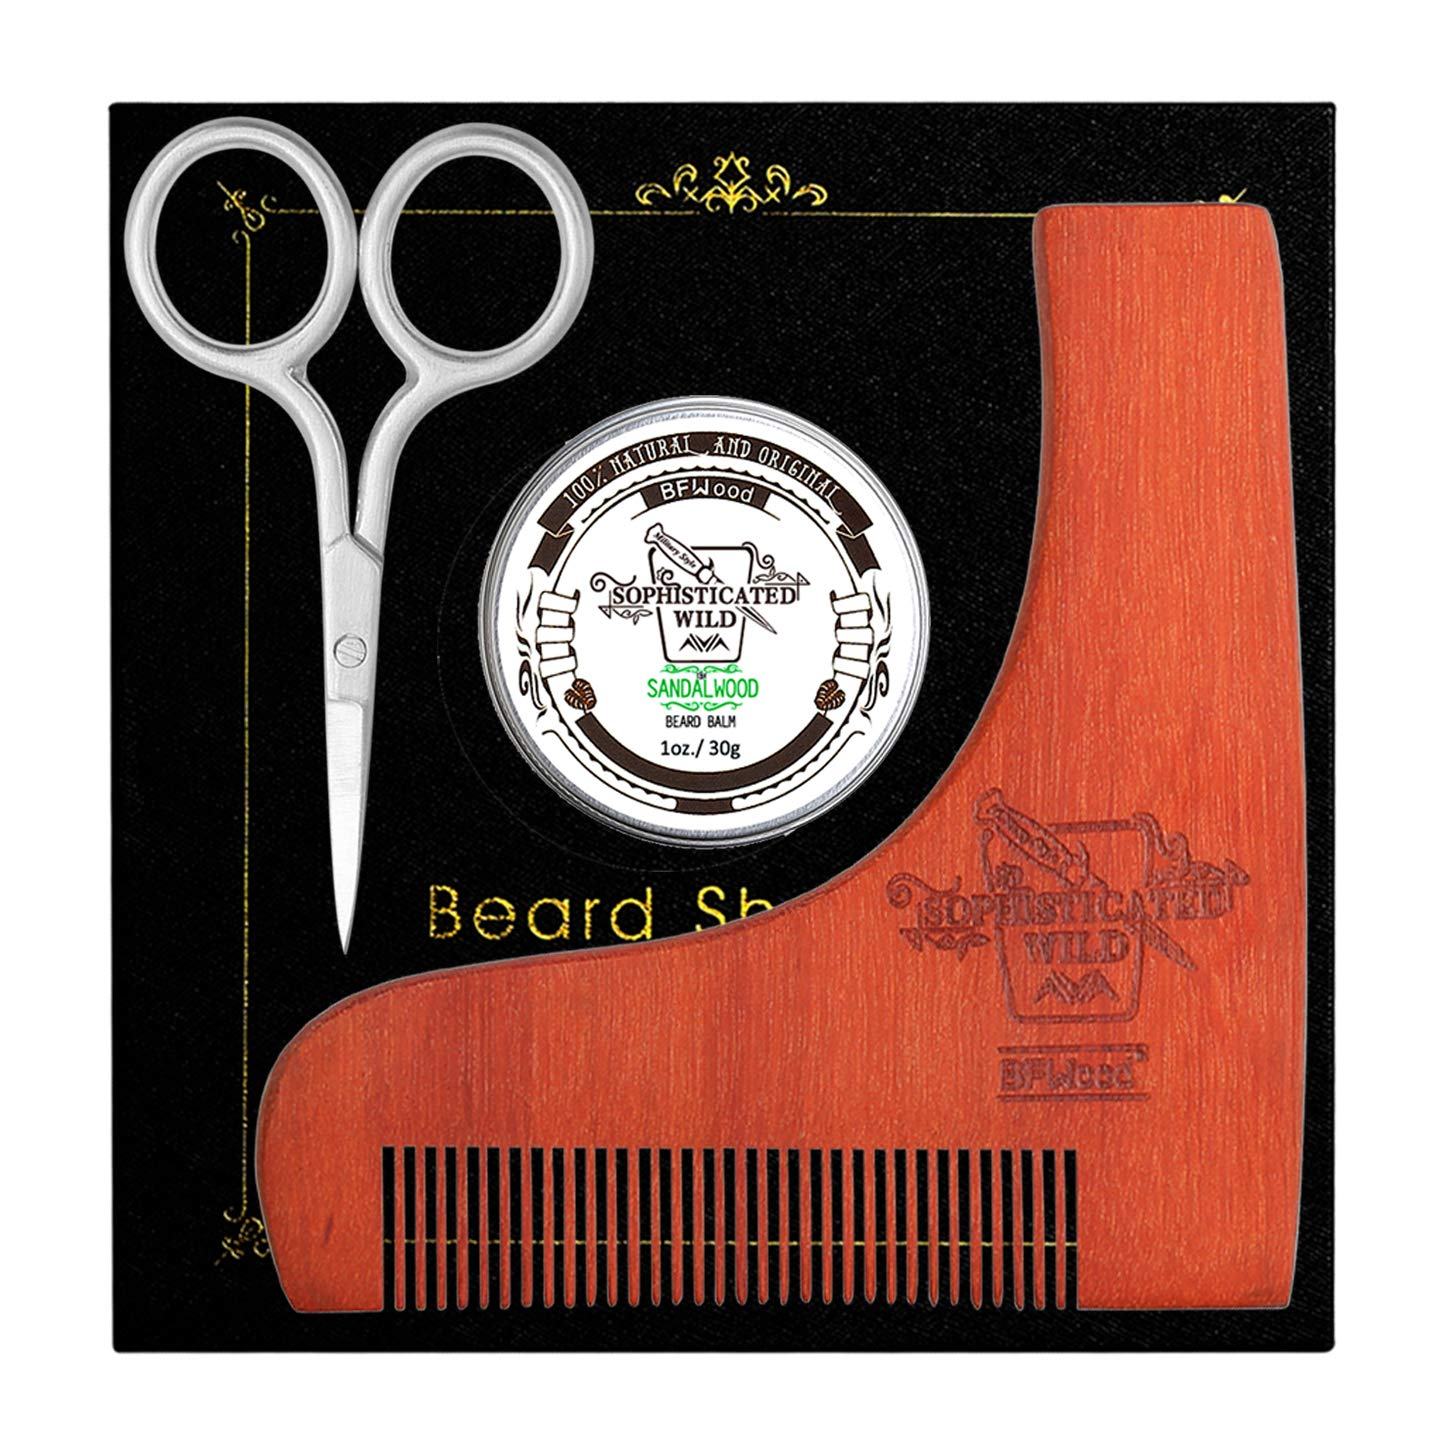 BFWood Beard Shaping Tool and Brush Kit – Unique Facial Hair Beard Brush + Wooden Shaping Template + Beard Balm Sandalwood Scent 30g